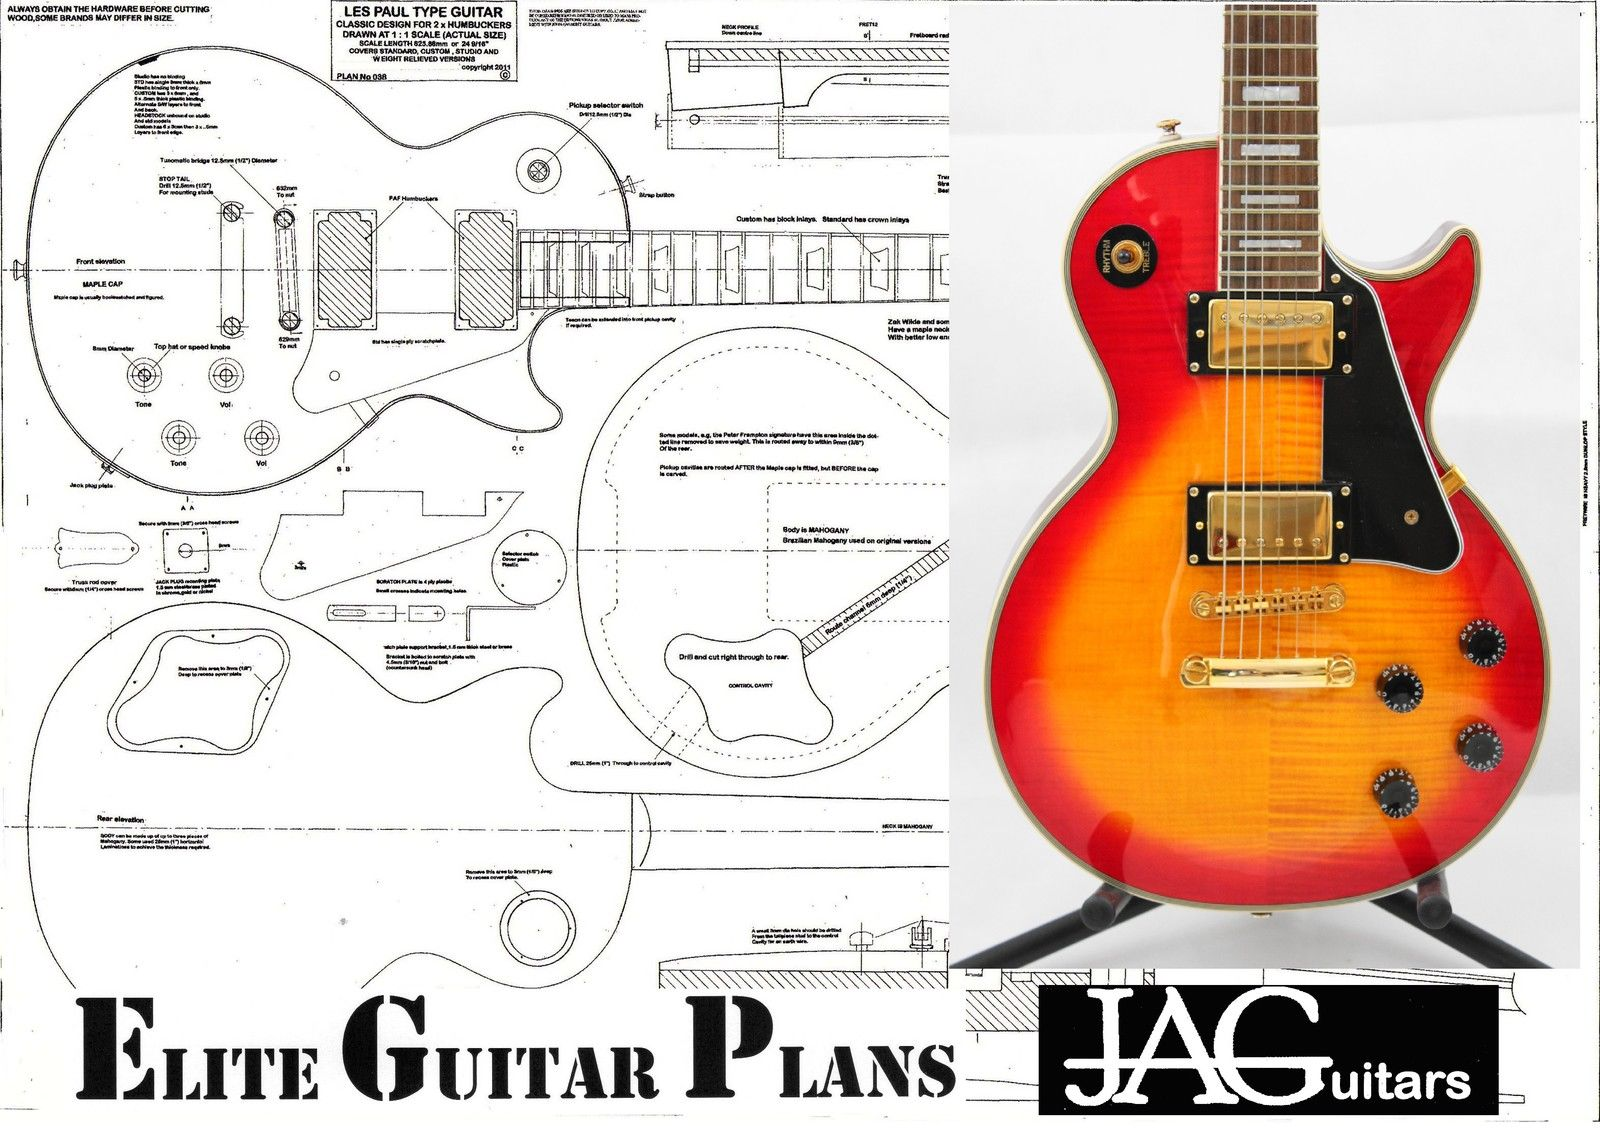 Les Paul Special Wiring Diagram Free Download Auto Electrical Drawing At Getdrawings Com